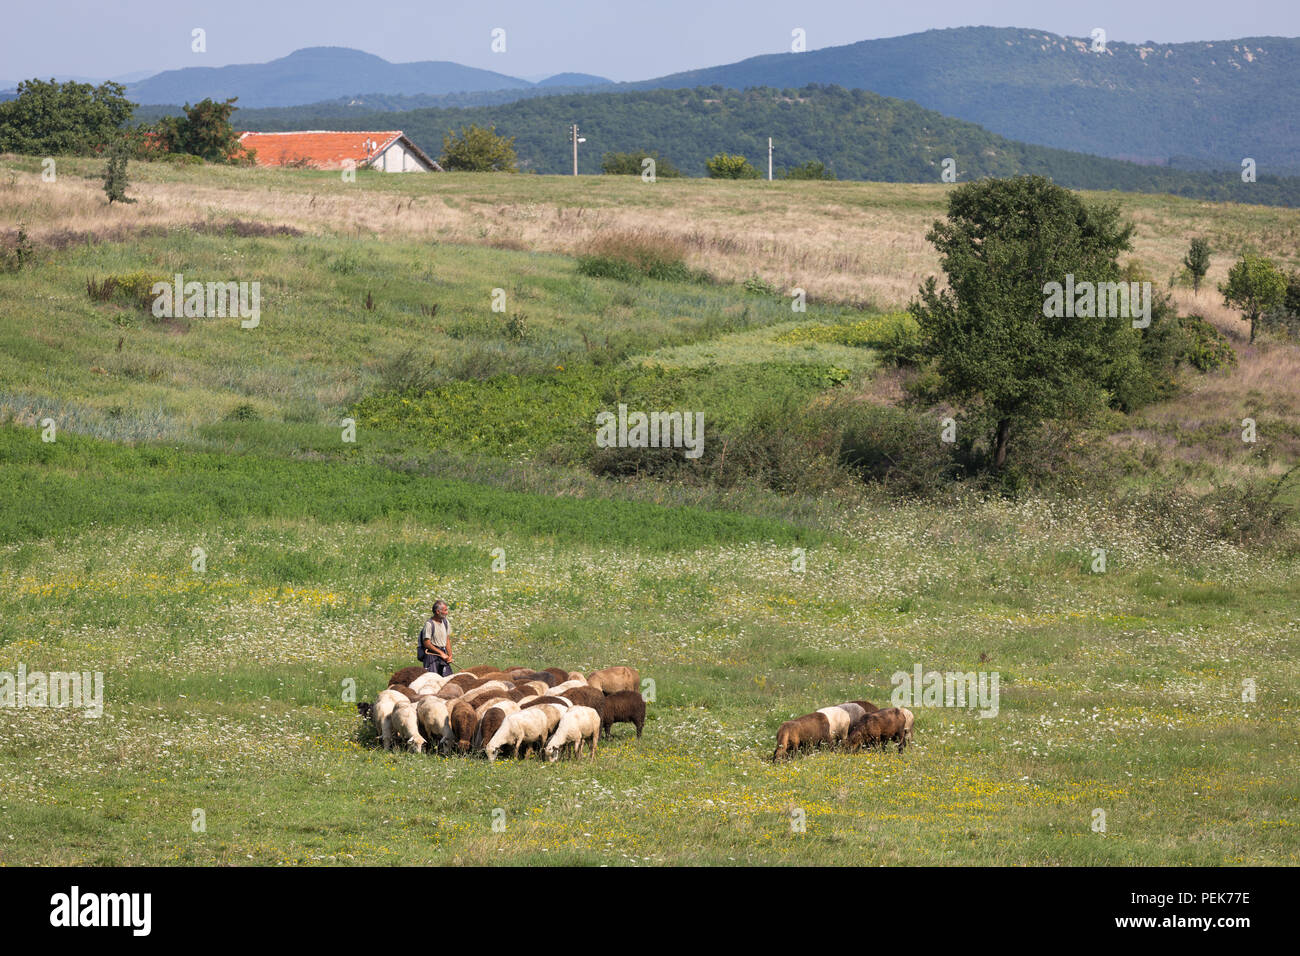 Shepherd guiding his sheep along a field at warm day in summer, Kardzhali Province, Bulgaria Stock Photo